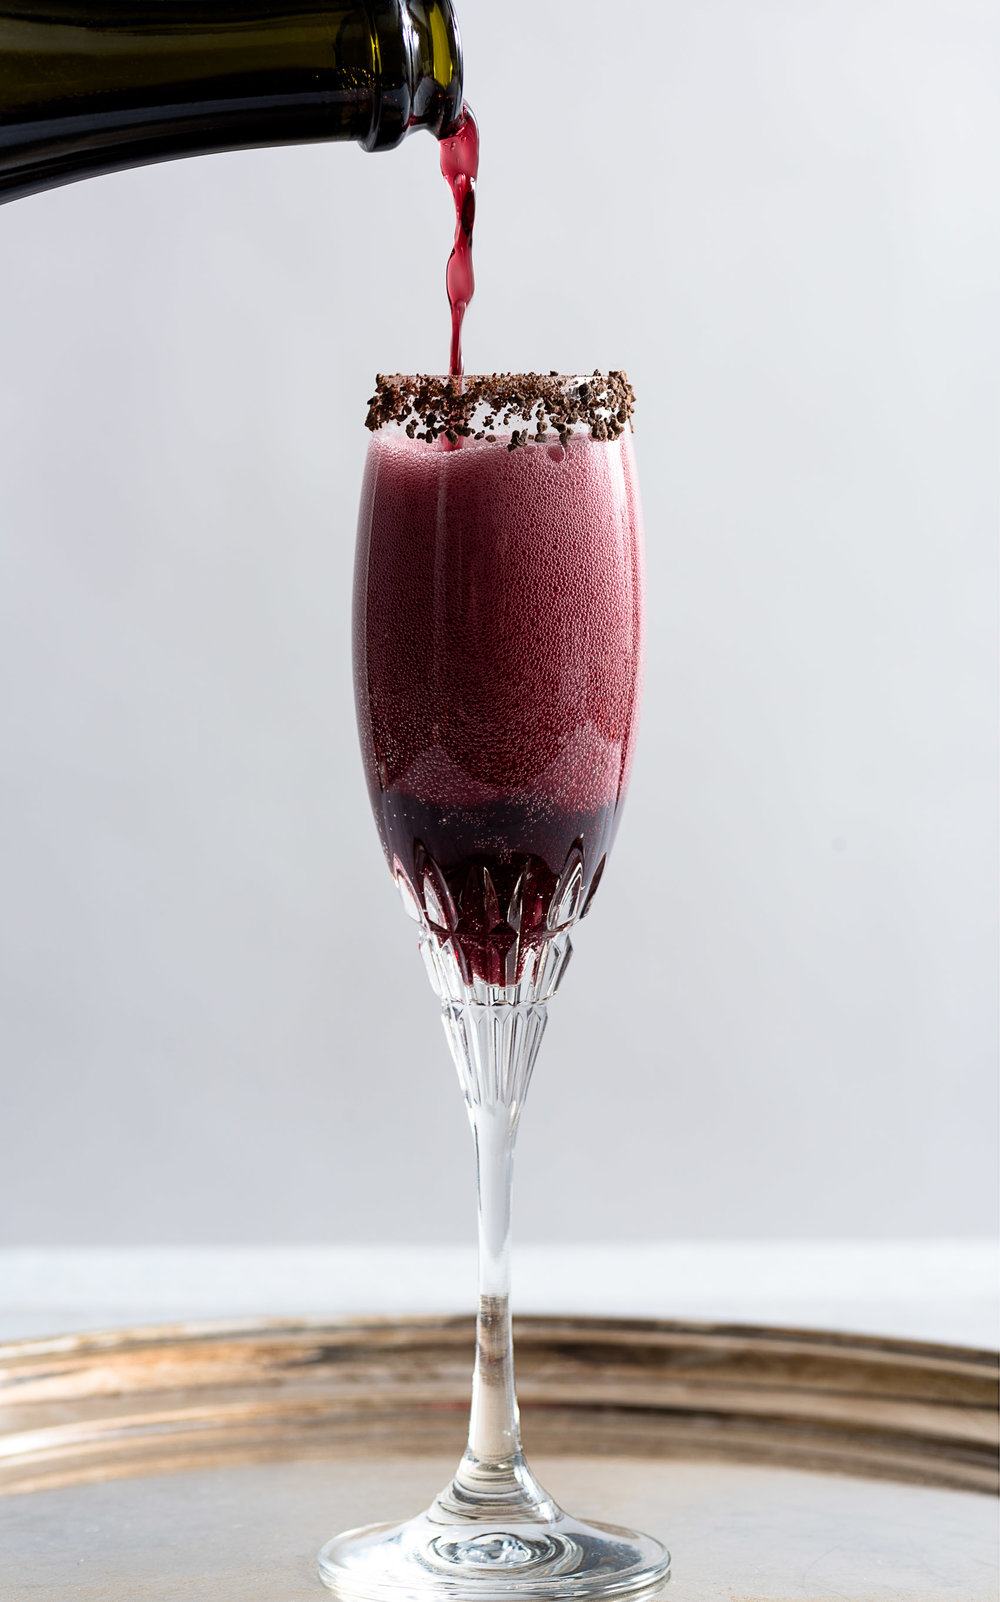 Sparkling Shiraz Cocktail with Dark Chocolate Coated Cacao Nibs from Nommagedon